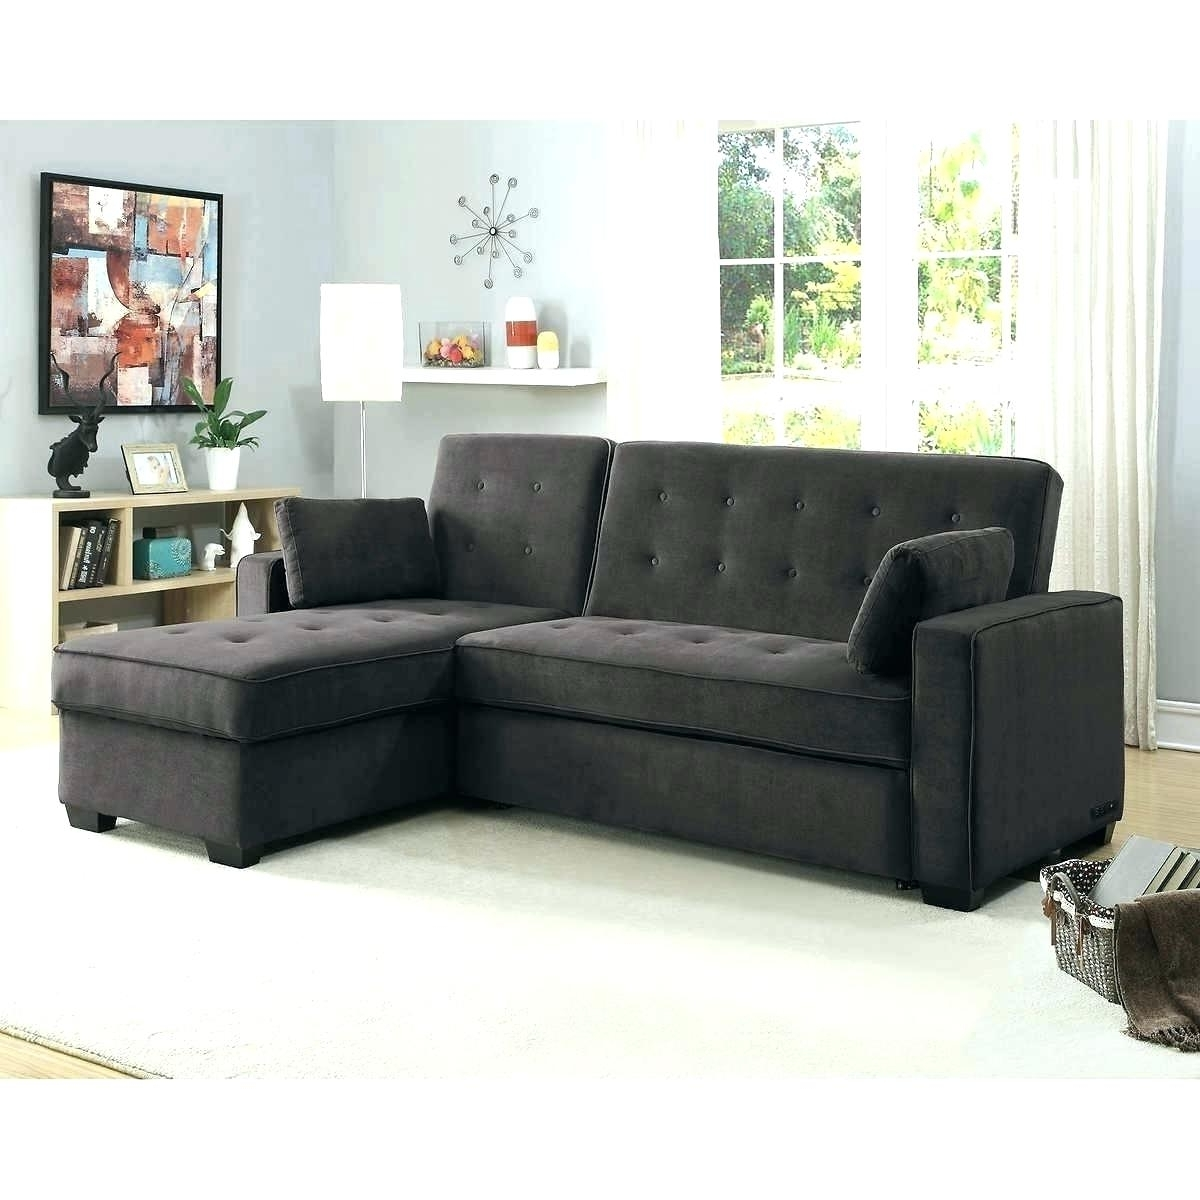 Well Known Berkline Sectional Leather Sofas Recliner – Poikilothermia Intended For Berkline Sectional Sofas (View 13 of 20)